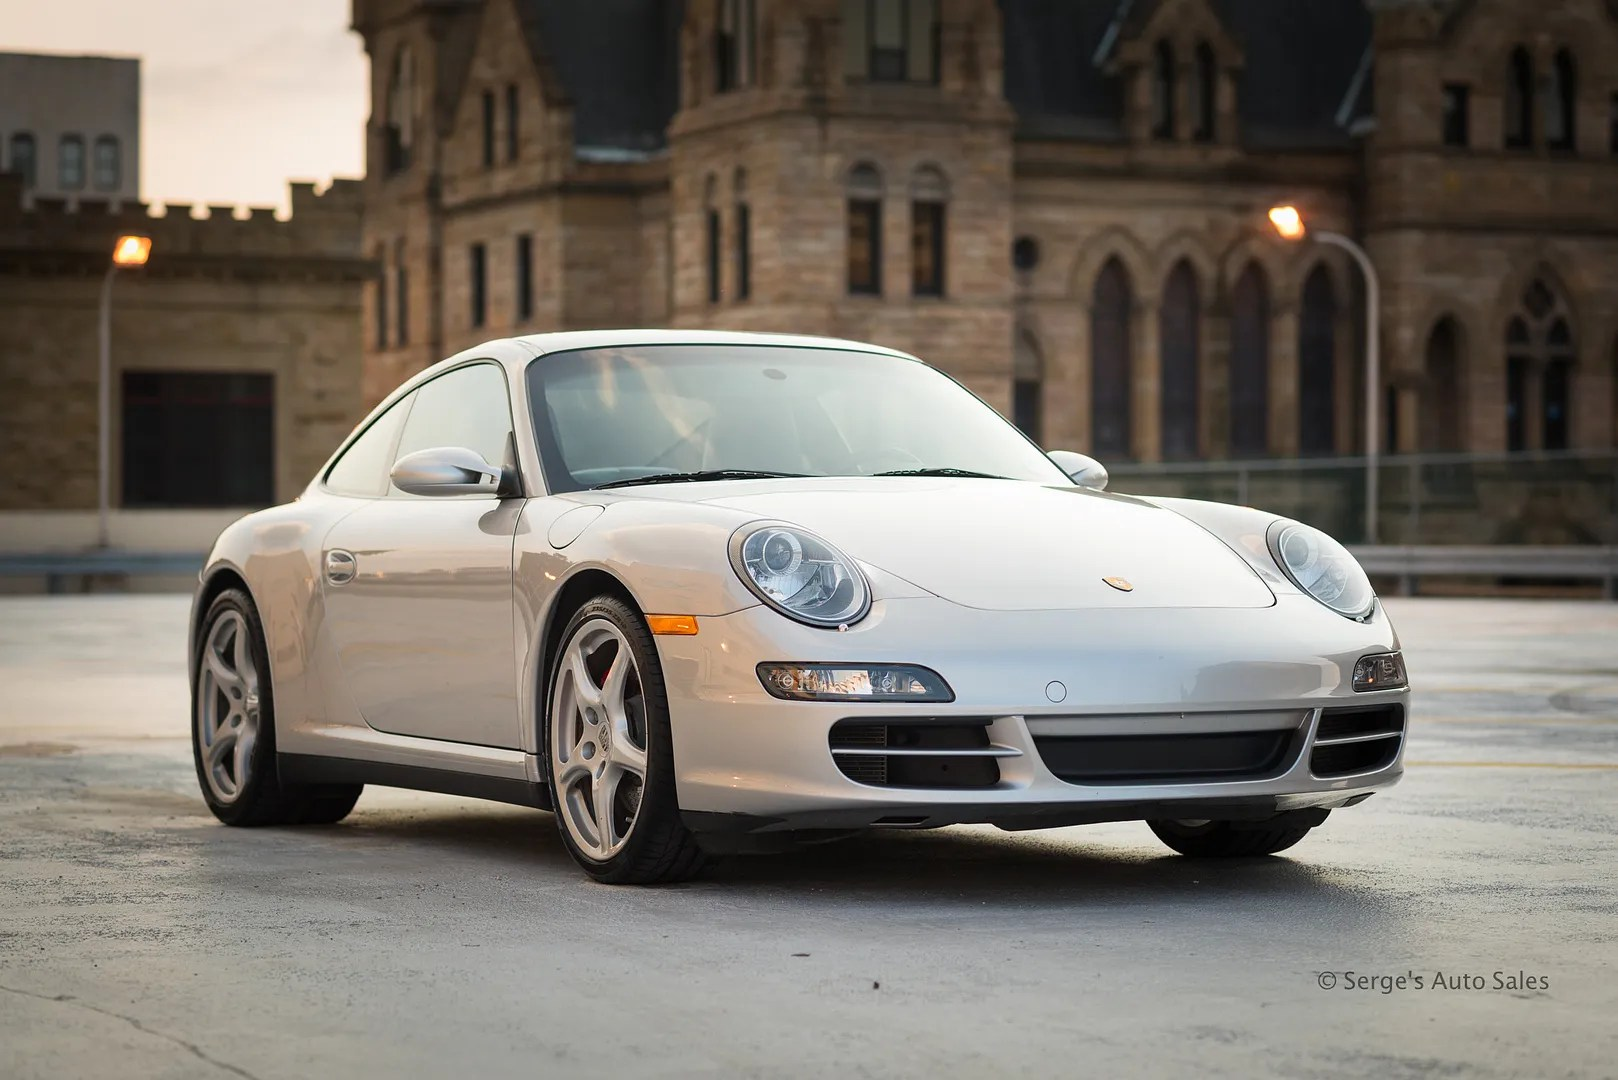 photo Serges-auto-sales-porsche-911-for-sale-scranton-pennsylvania-15_zpsfwafk0ar.jpg